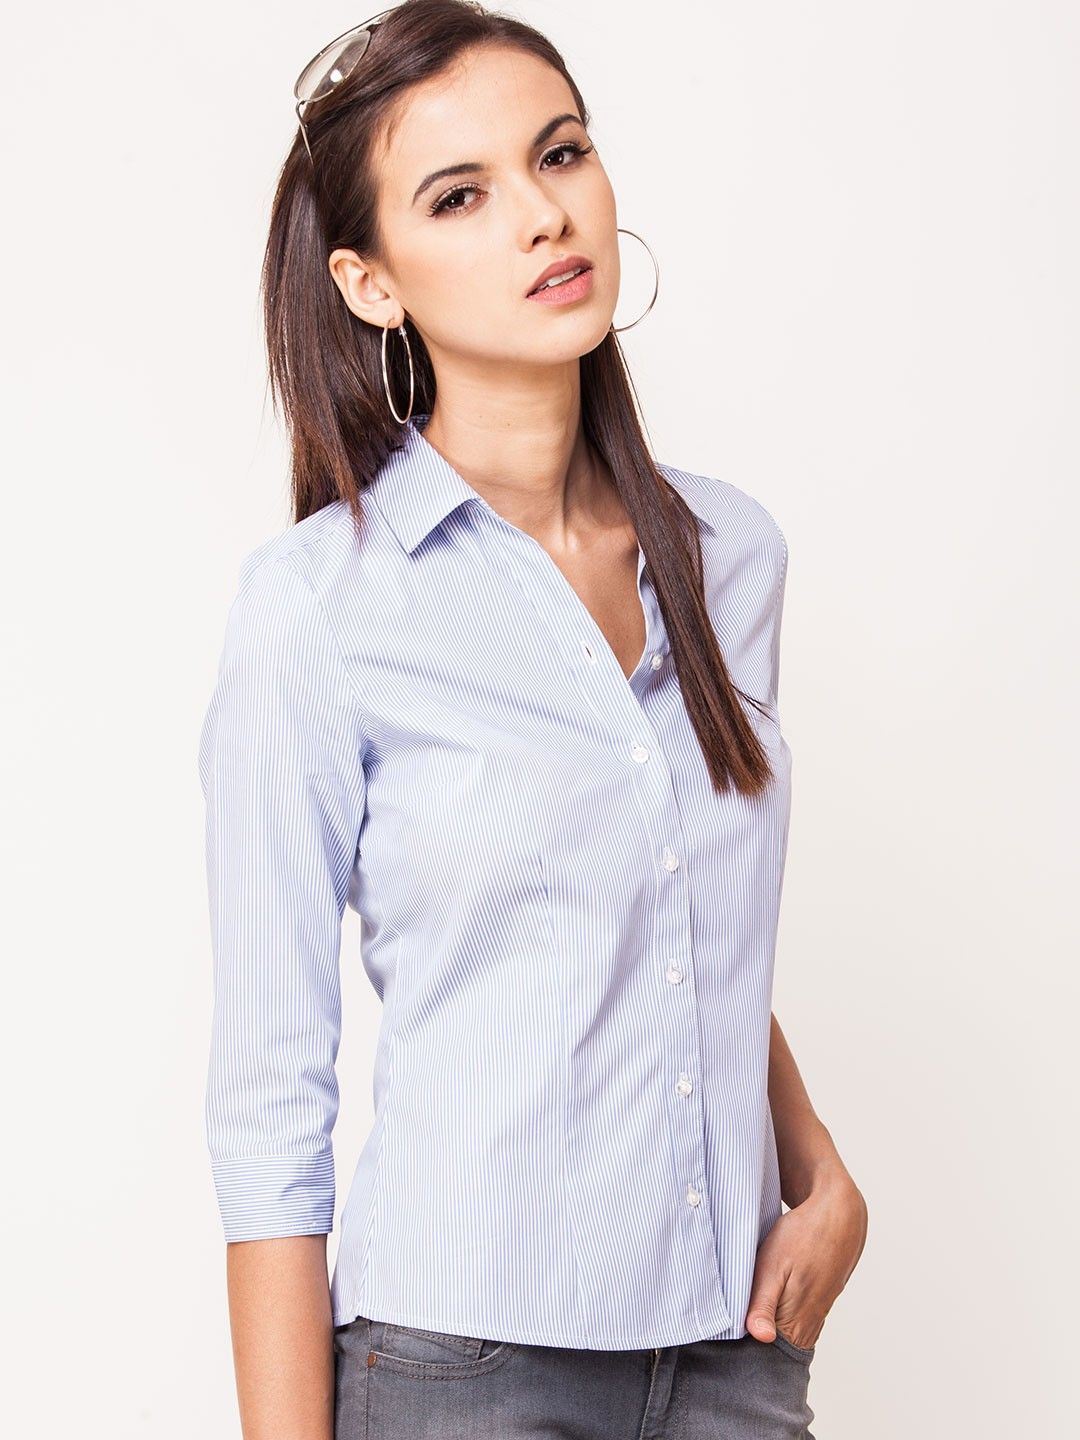 30a2d67f45ab48 Allen Solly Formal Shirt With Pin Stripe - Buy Women's Formal Shirts online  in India | KOOVS